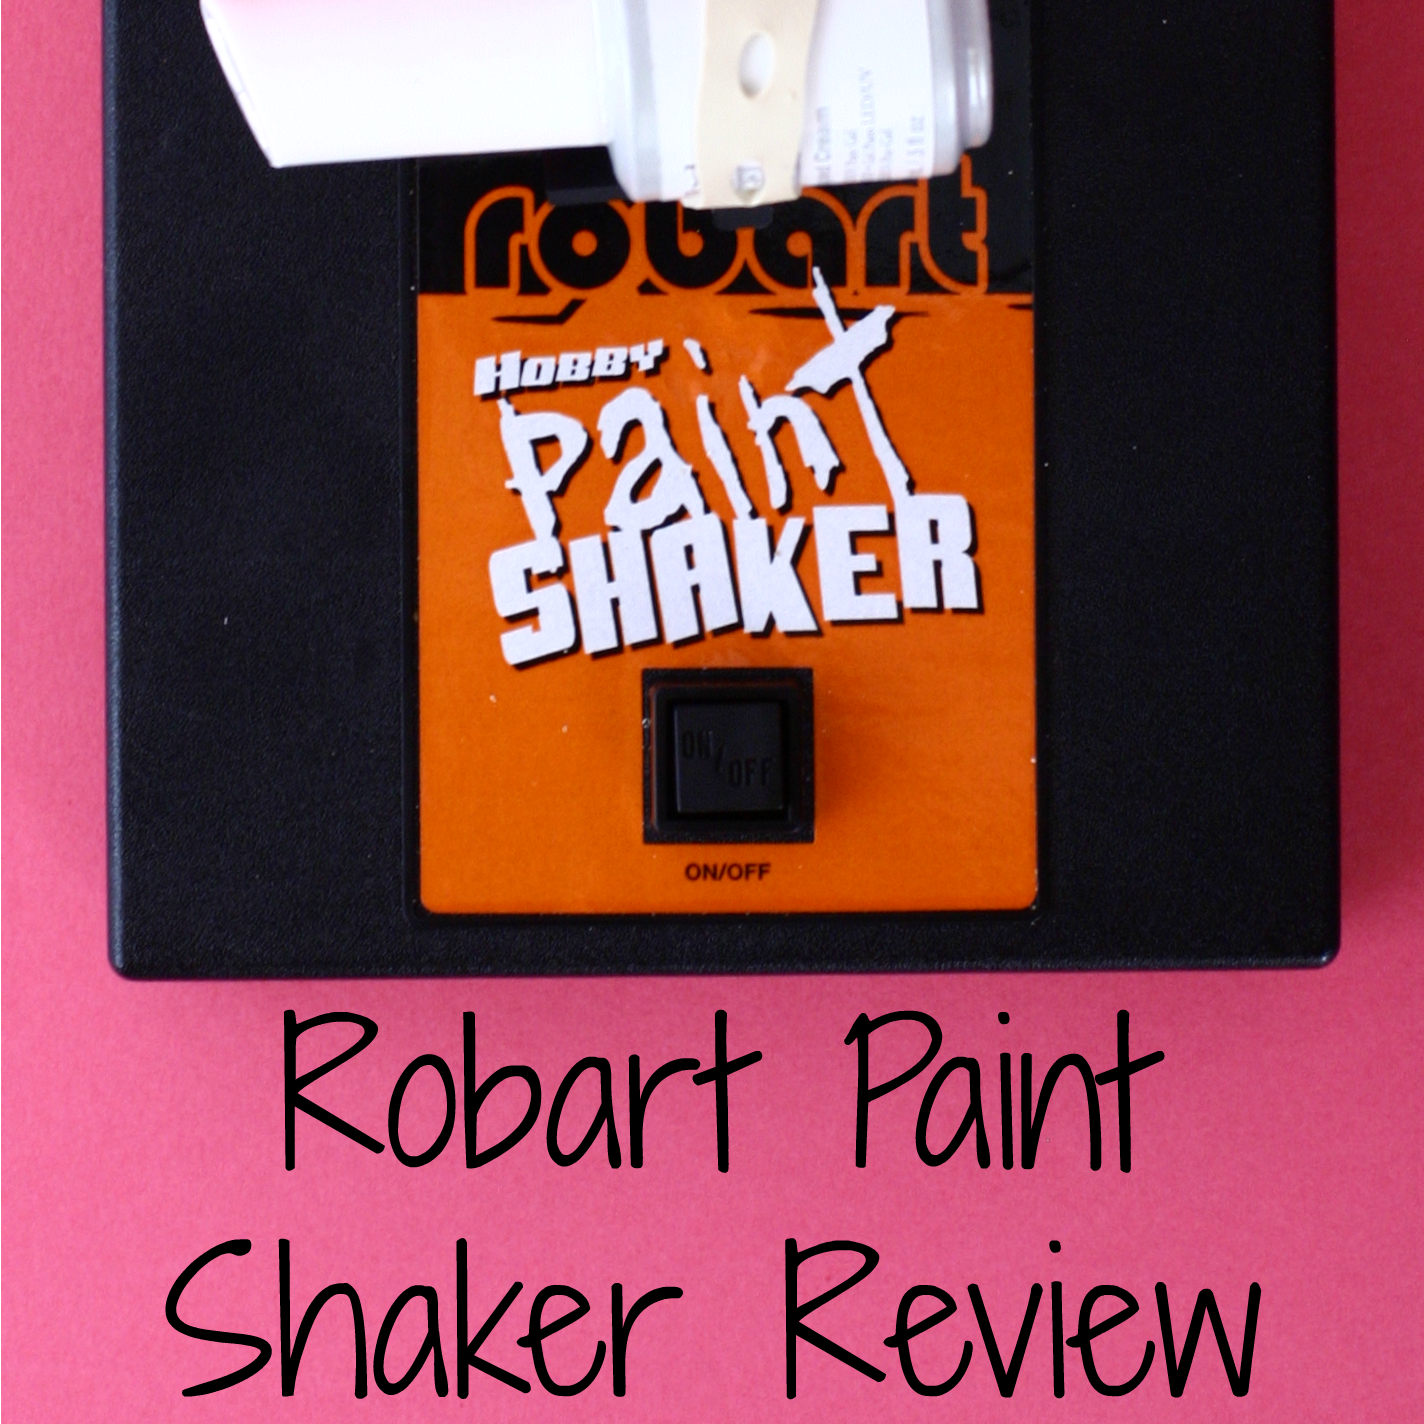 Robart Paint Shaker Review